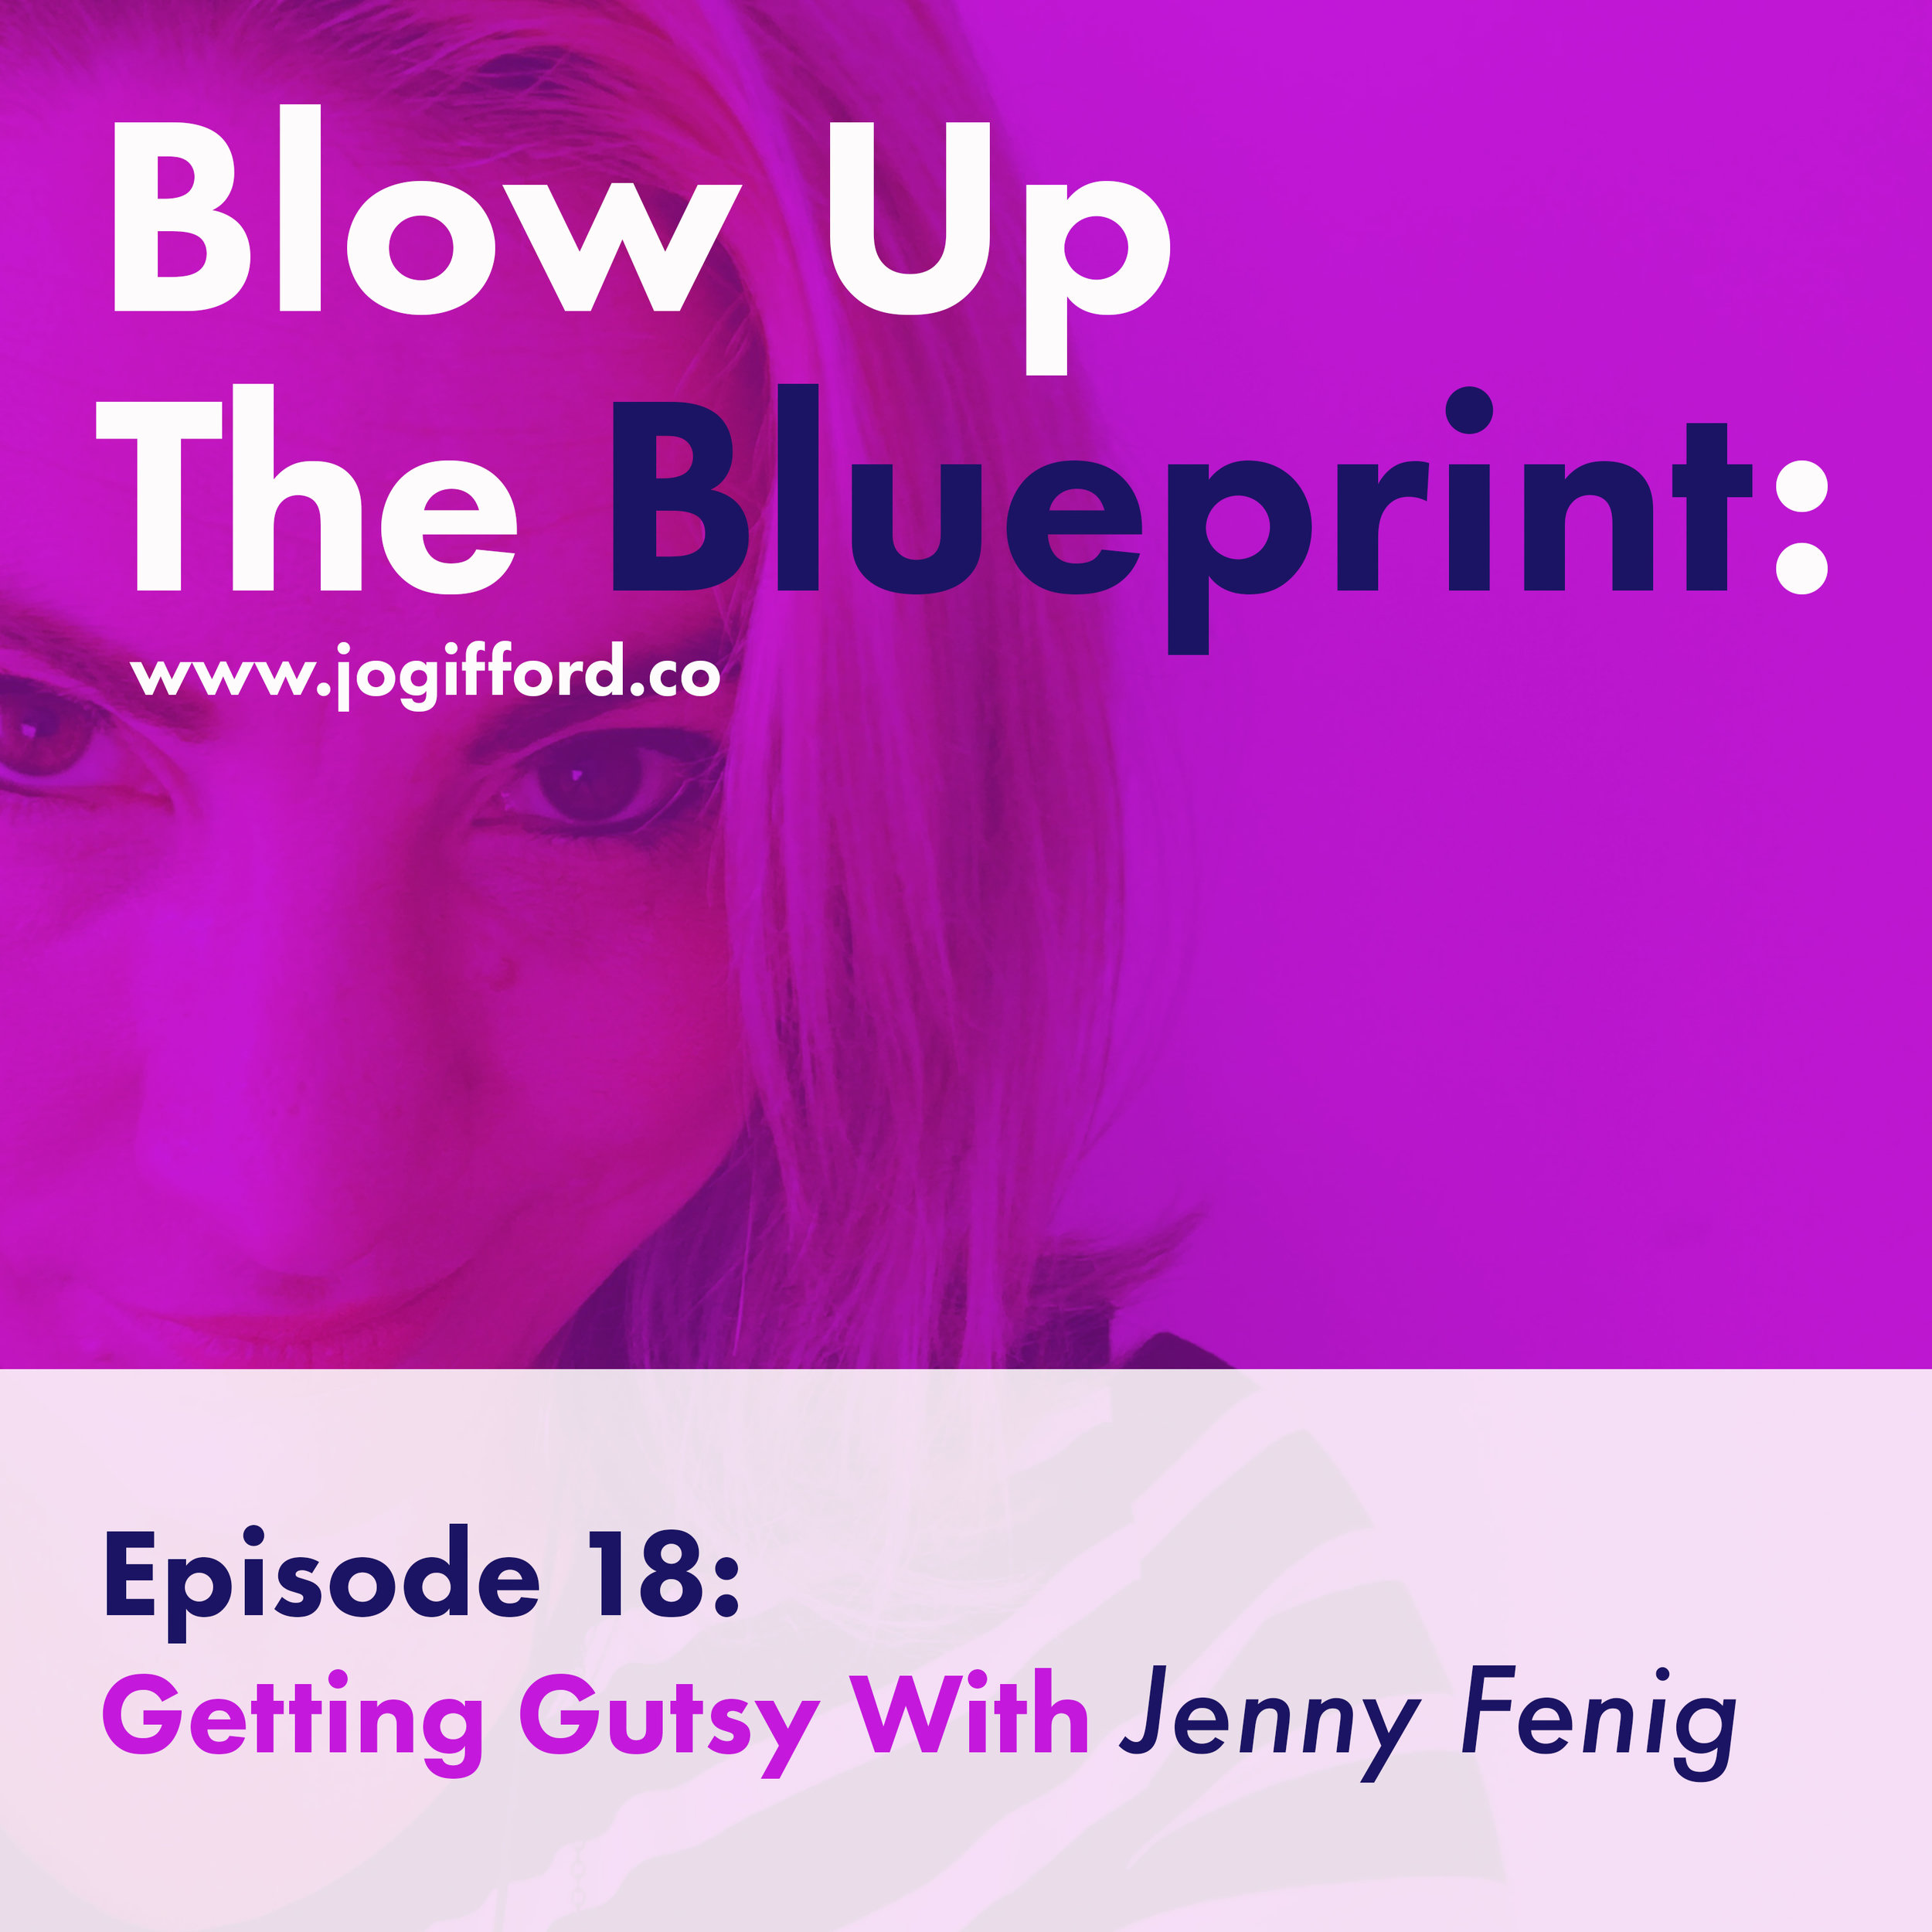 Podcast-Episode-18--Getting-Gutsy-with-Jenny-Fenig.jpg